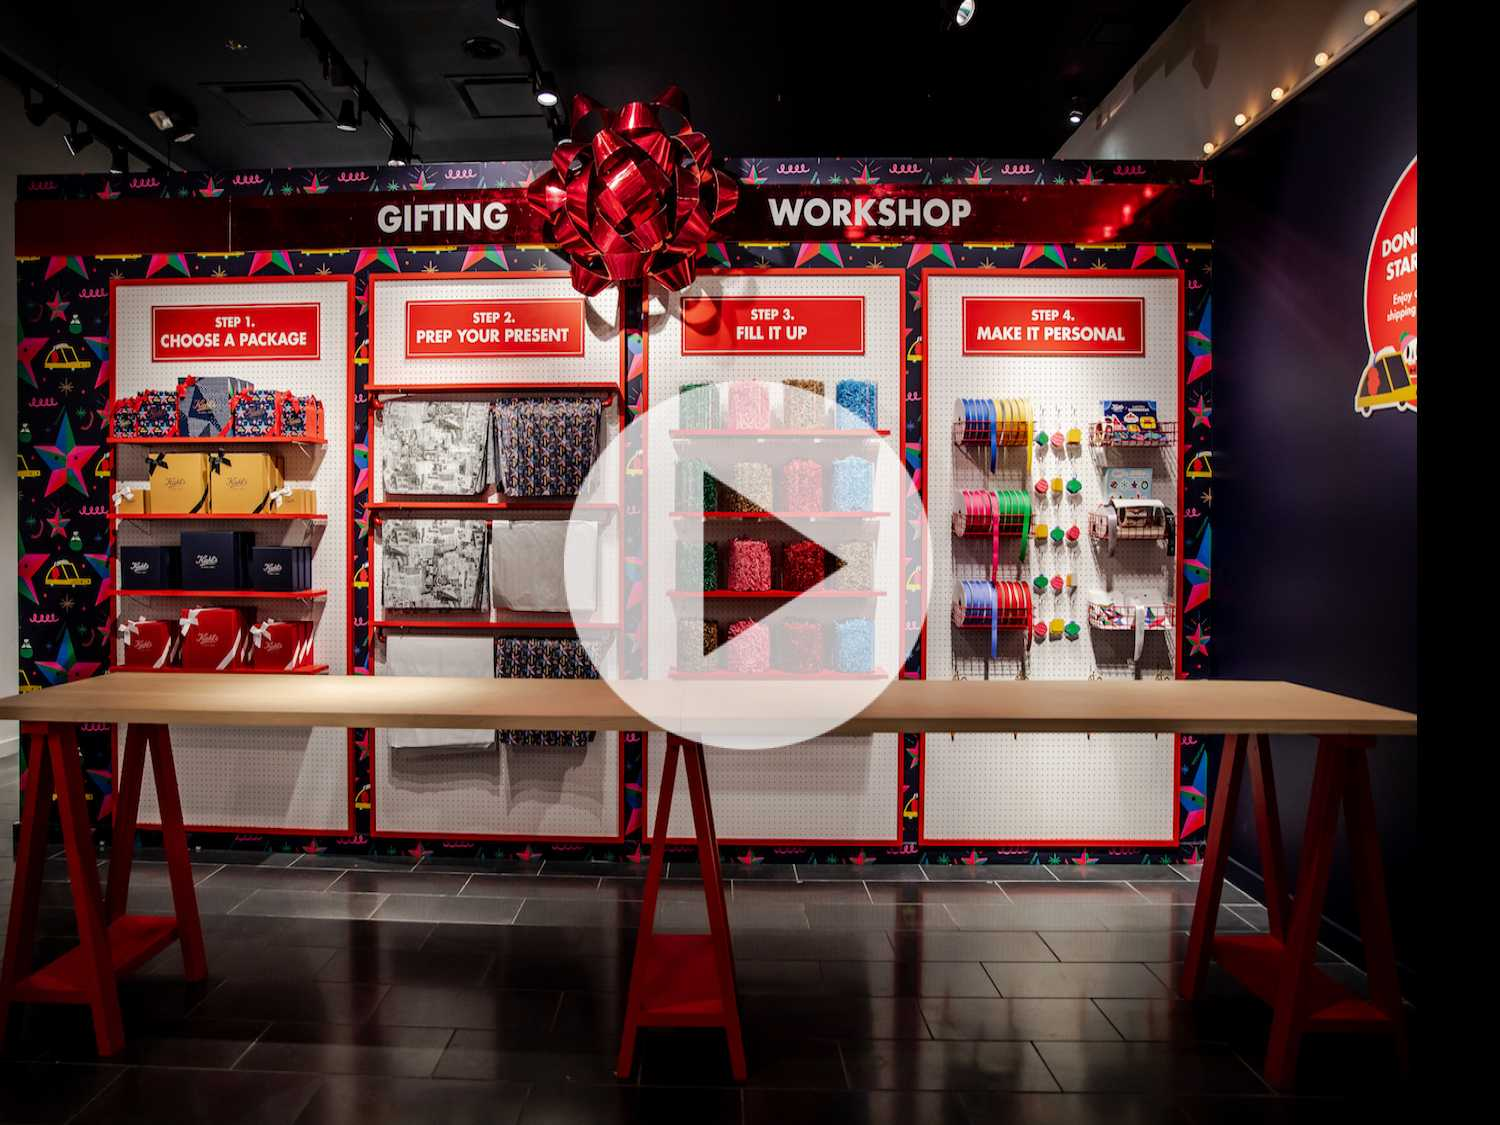 Kiehl's Opens First-Ever Gifting Pop-Up Shop in NYC